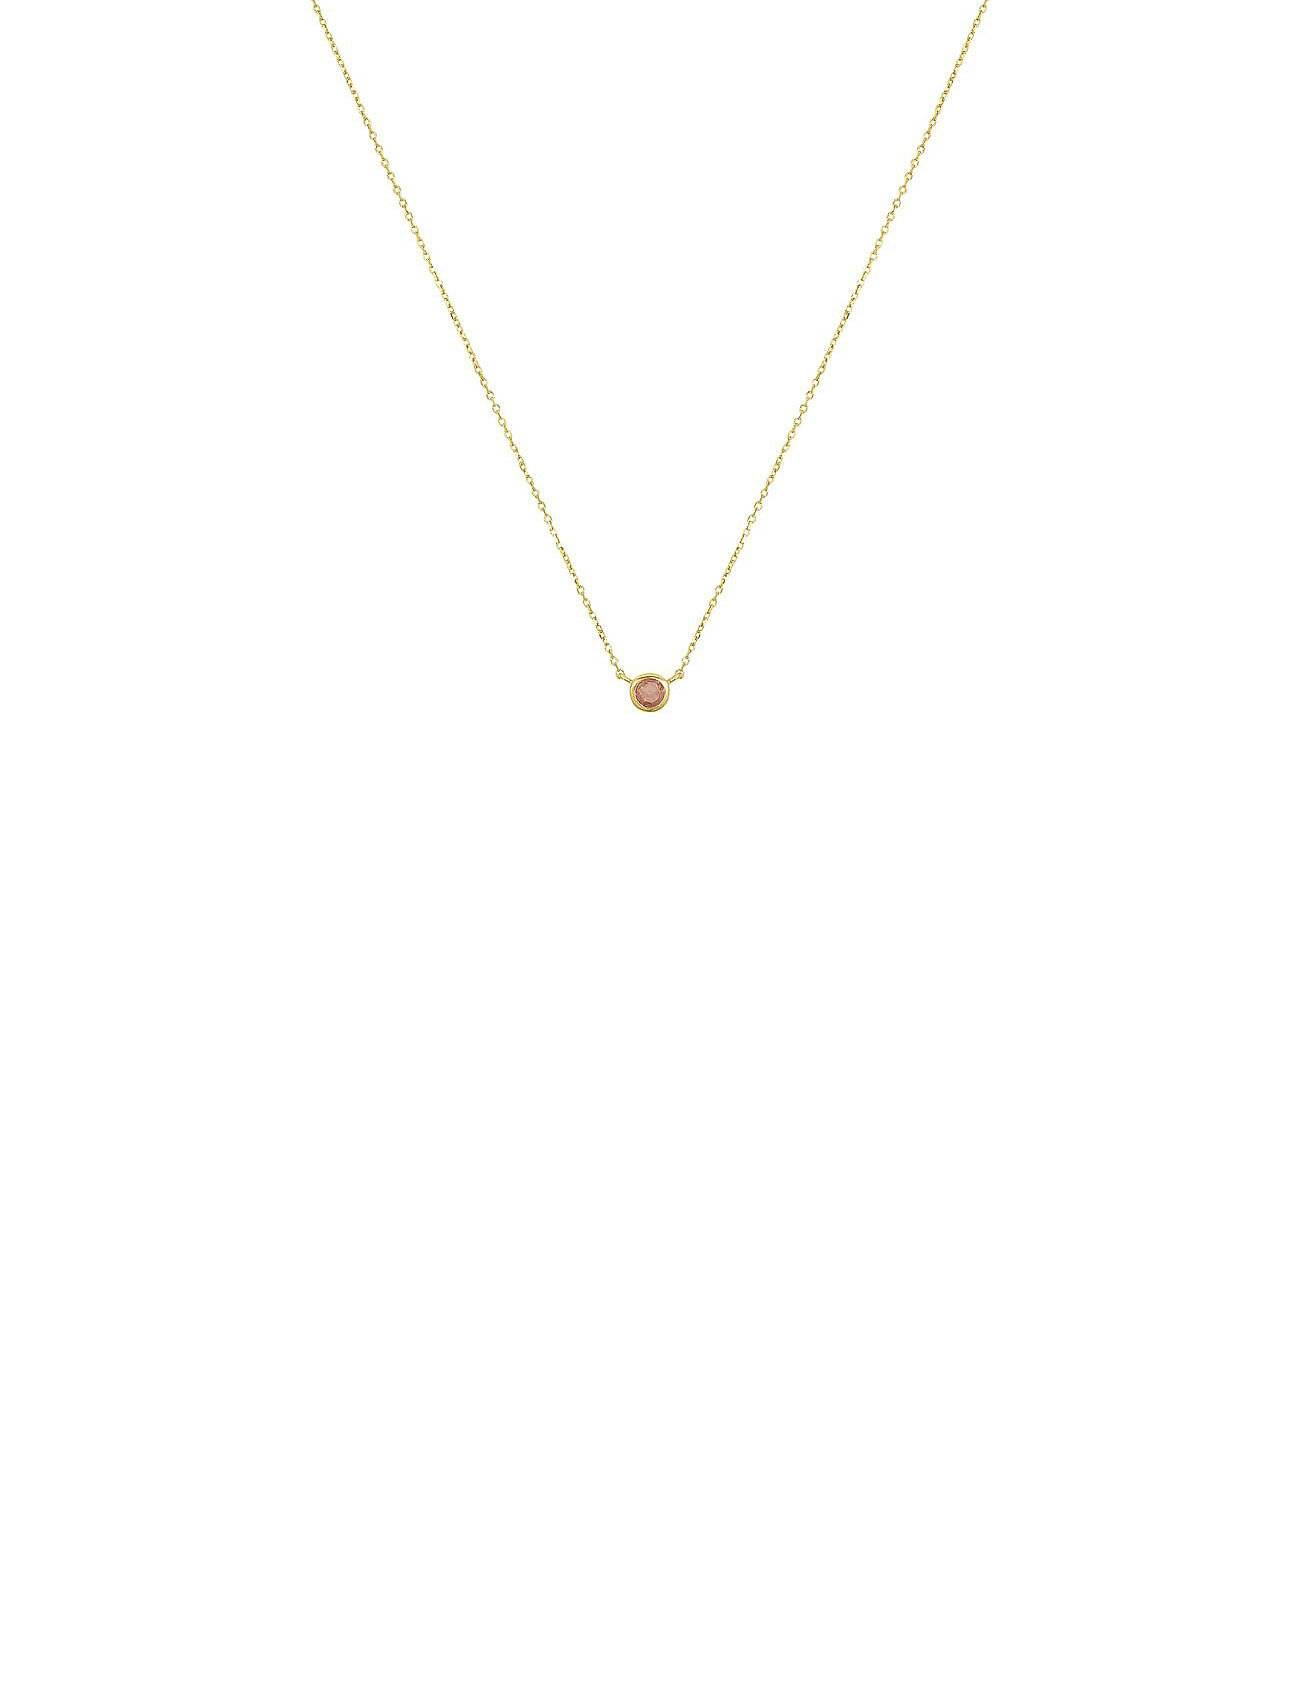 SOPHIE by SOPHIE Mini Stone Necklace